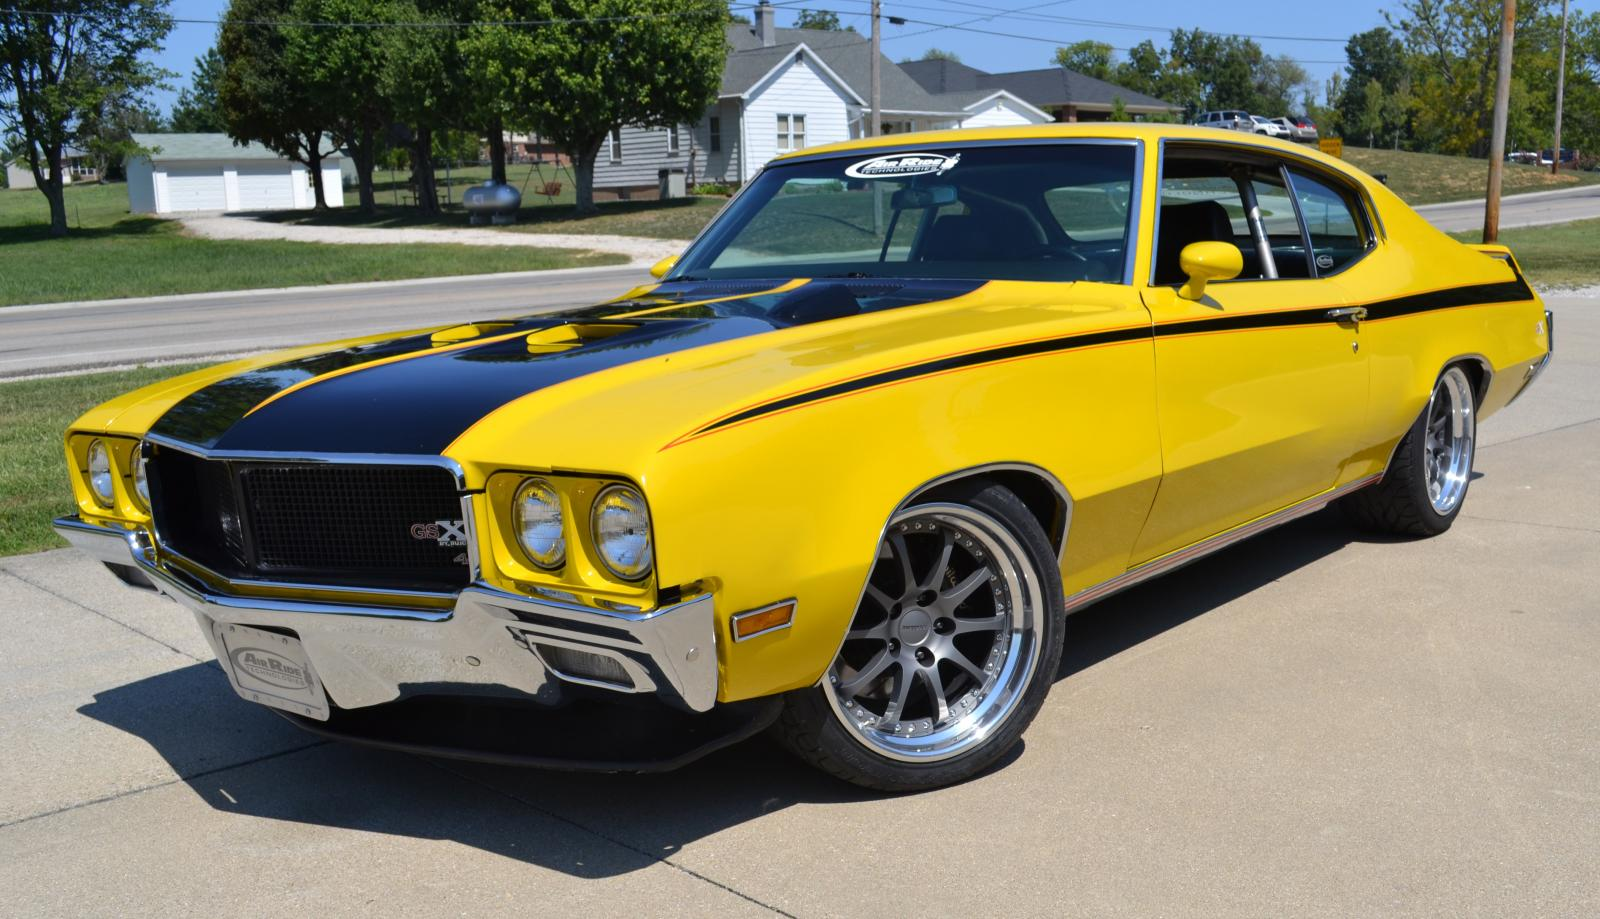 Classic & Muscle Cars Club: 1970 Buick GSX Stage 1